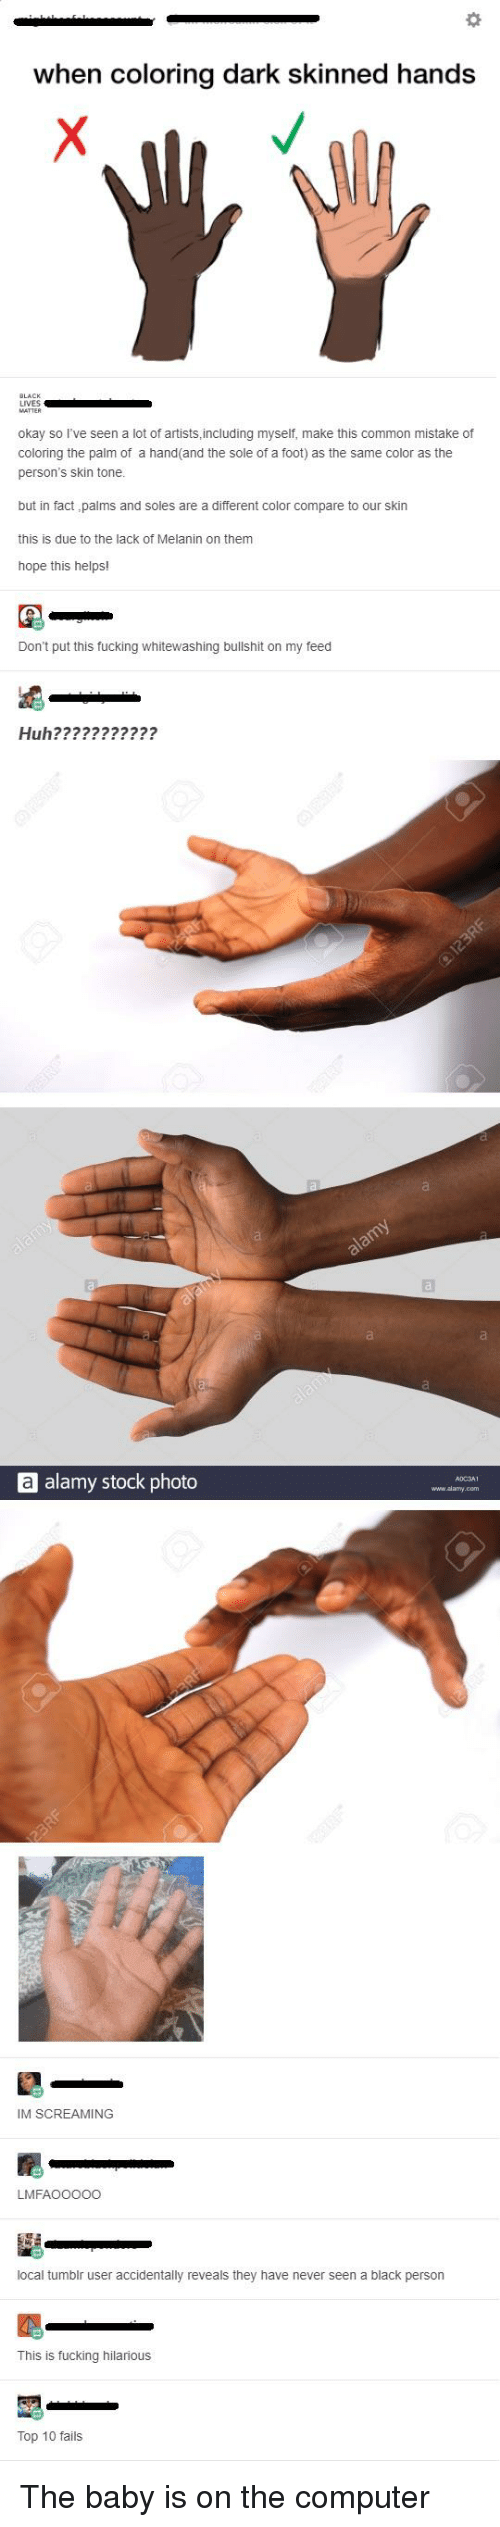 Fucking, Huh, and Tumblr: when coloring dark skinned hands  LIVES  okay so I've seen a lot of artists including myseif, make this common mistake or  coloring the palm of a hand(and the sole of a foot) as the same color as the  person's skin tone  but in fact palms and soles are a different color compare to our skin  this is due to the lack of Melanin on thenm  hope this helps!  Don't put this fucking whitewashing bullshit on my feed  Huh???????????  a alamy stock photo  IM SCREAMING  LMFAOO000  local tumblr user accidentally reveals they have never seen a black person  This is fucking hilarious  Top 10 fails